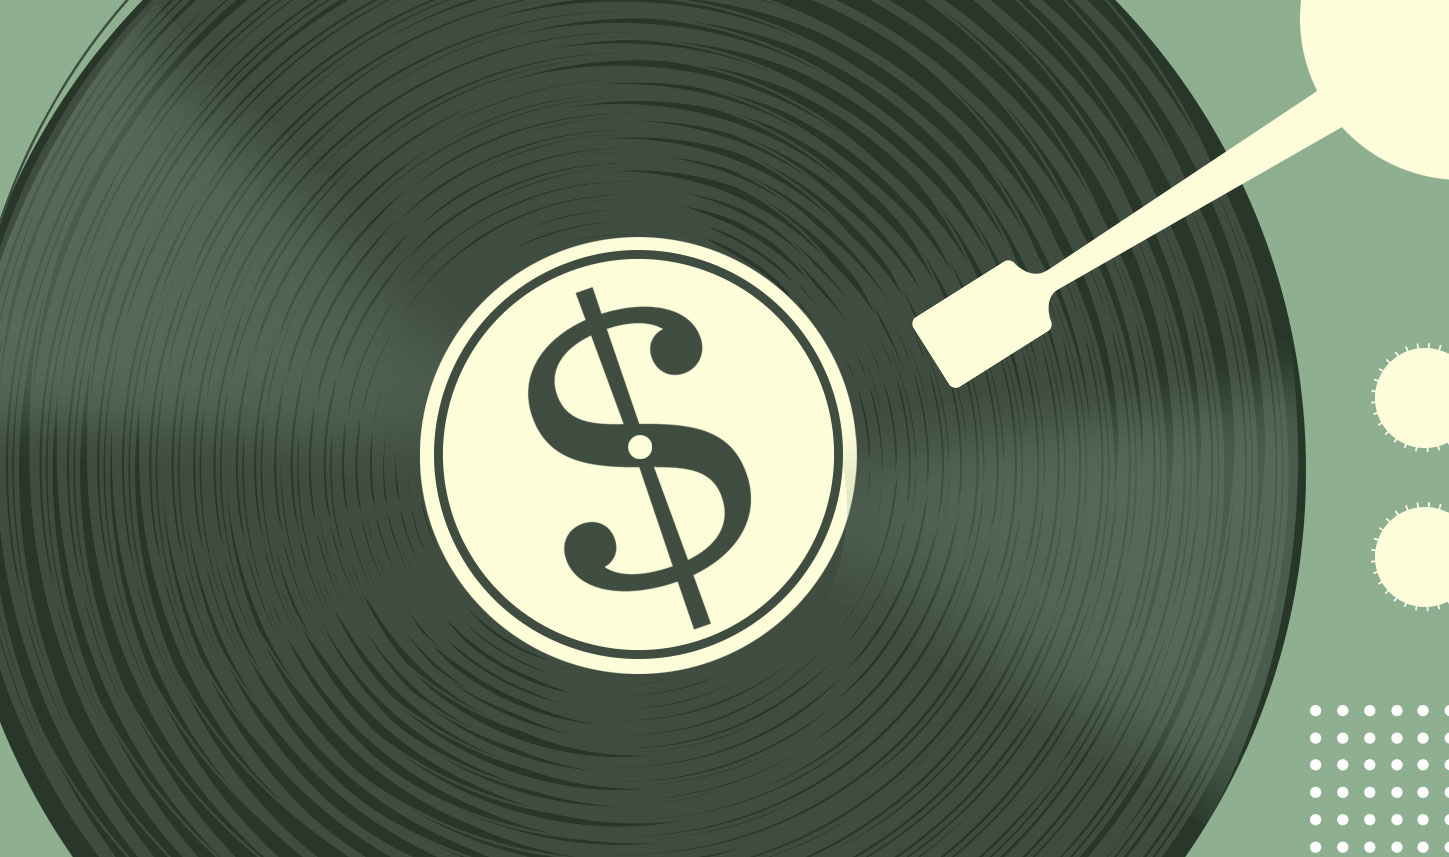 """If you want to use music, you've got to pay for it"" - Vox"